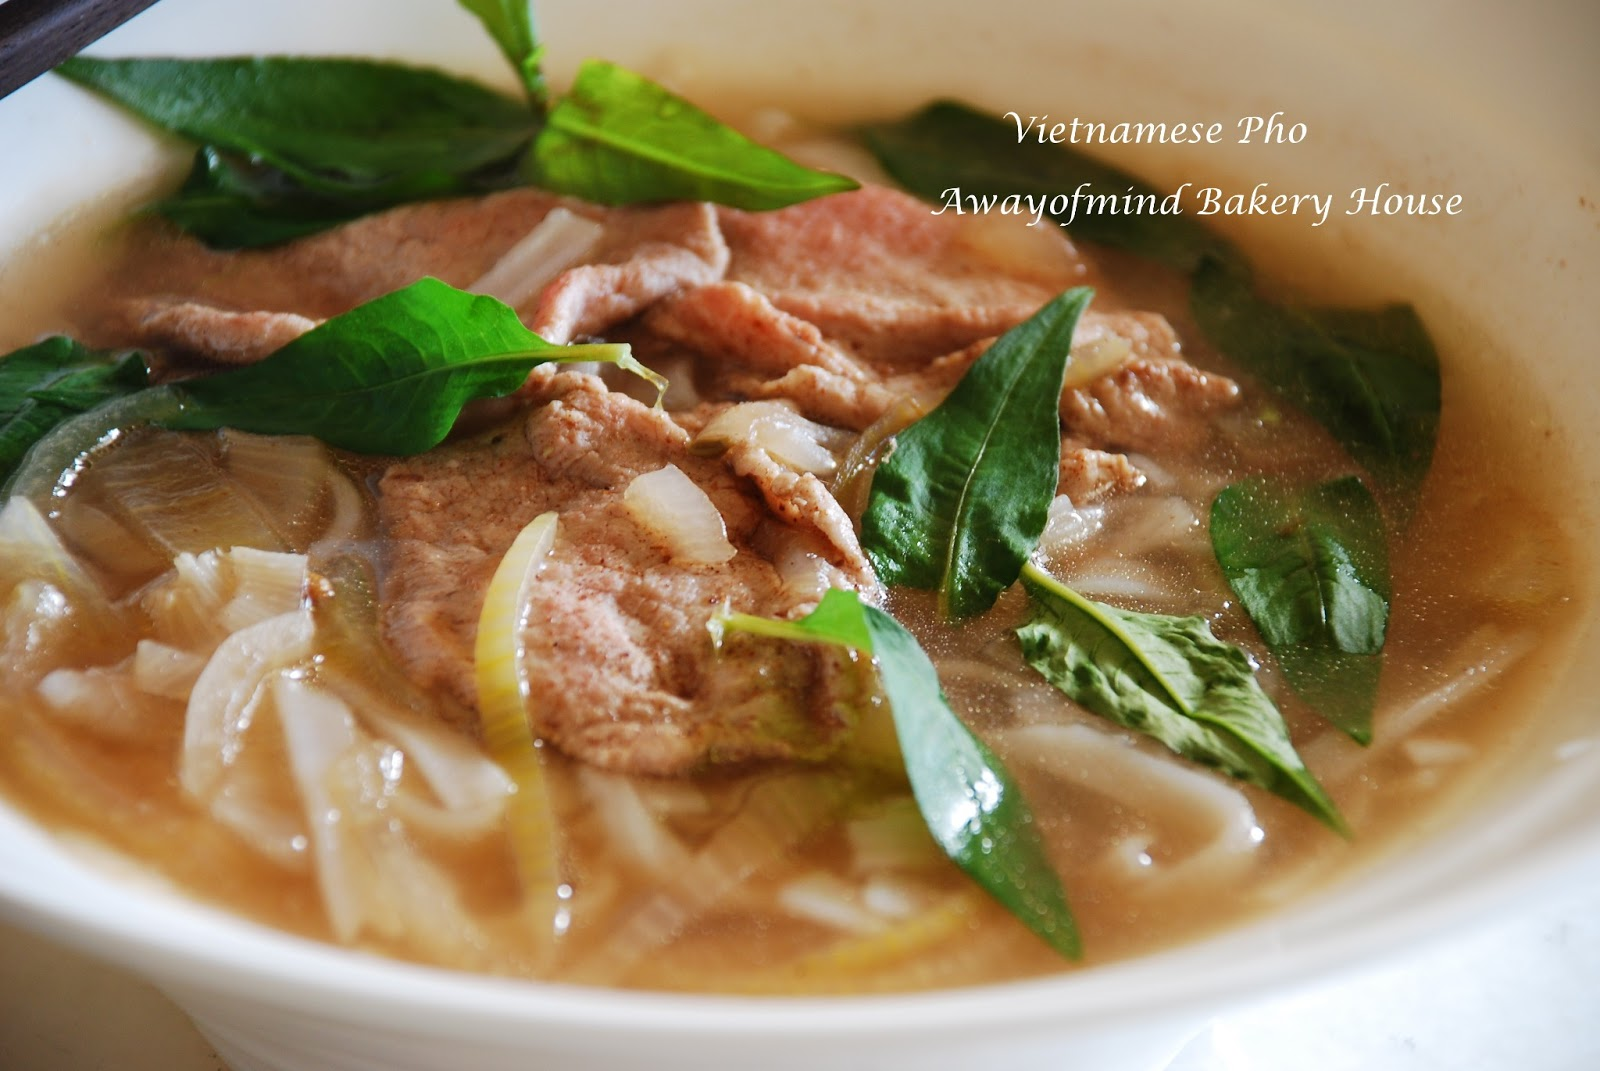 Awayofmind bakery house vietnamese pho beef rice noodles for Asian cuisine and pho